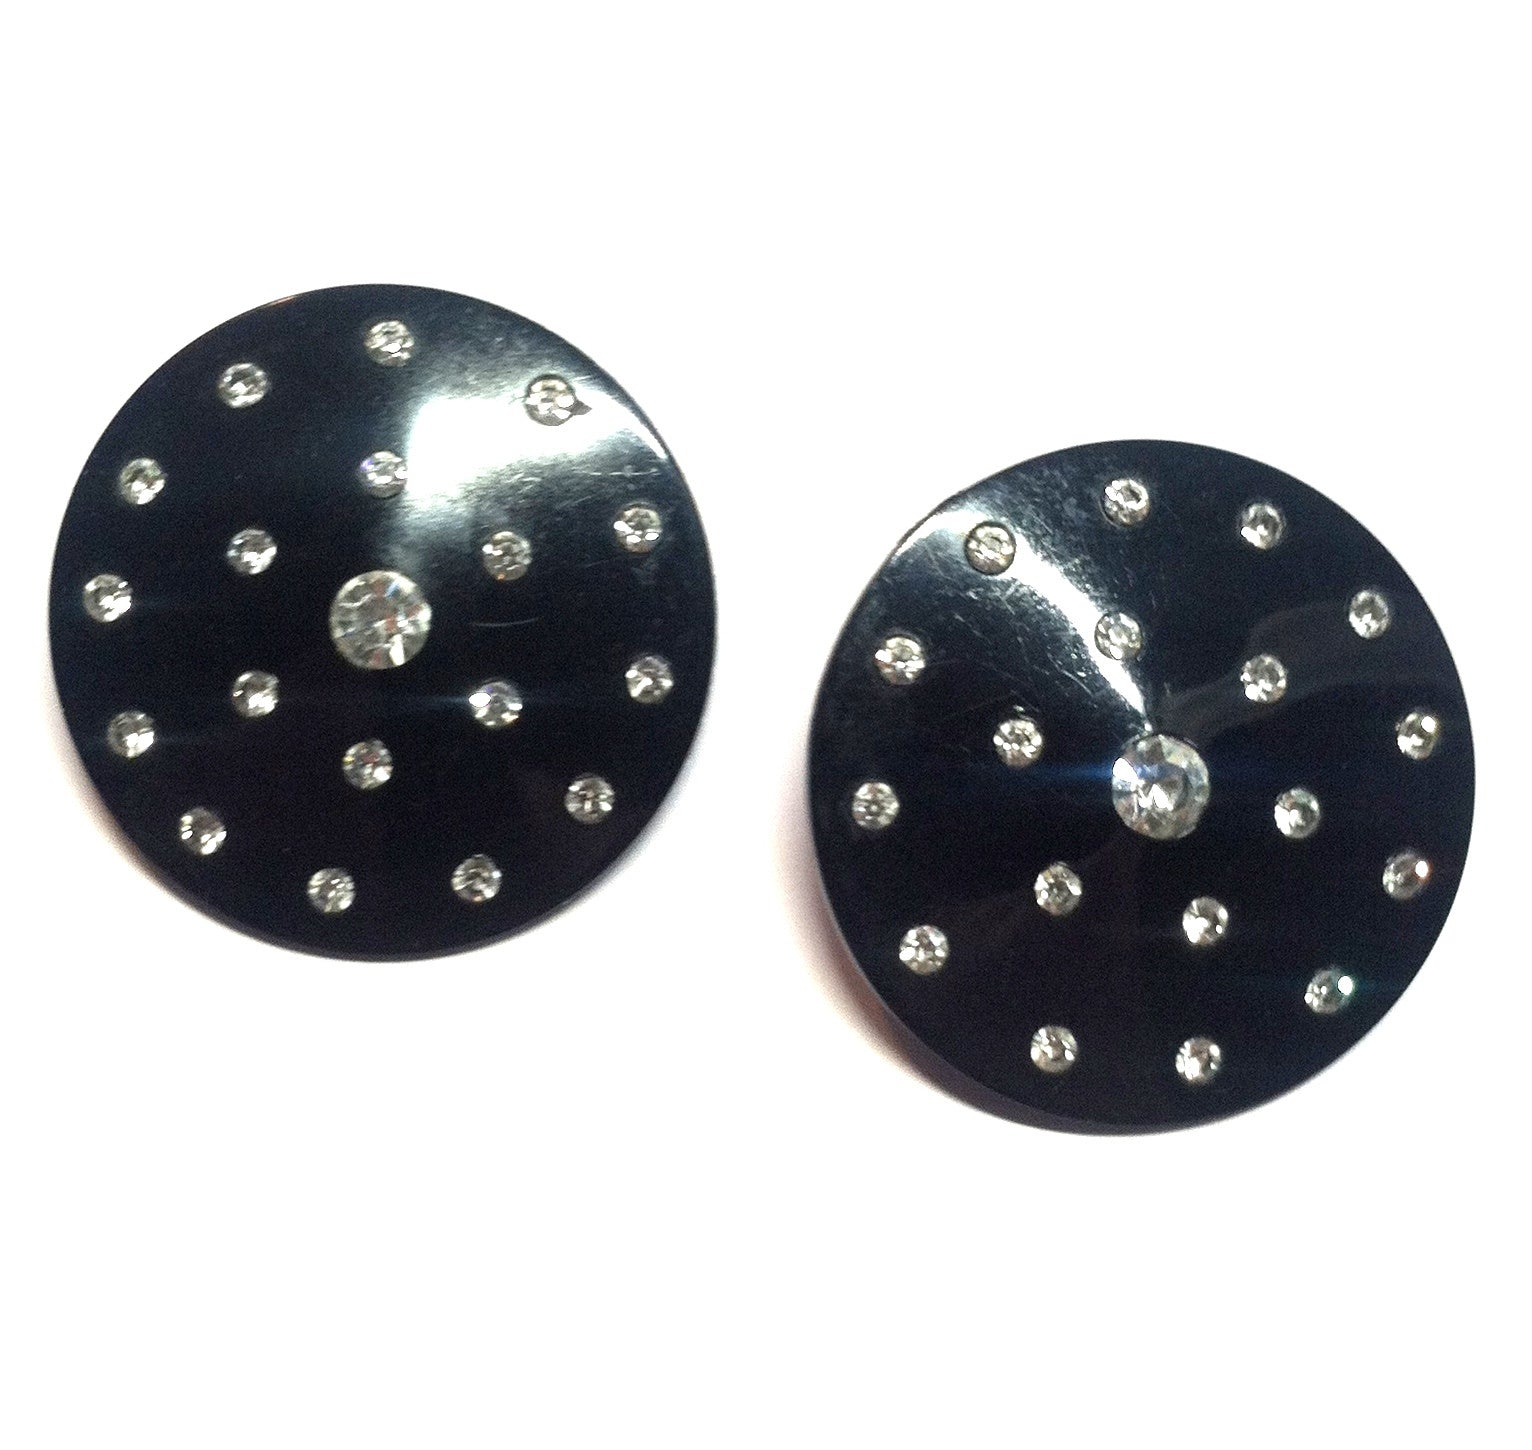 Oversized Black Lucite Concave Disc Clip Earrings w/ Clear Rhinestones circa 1950s